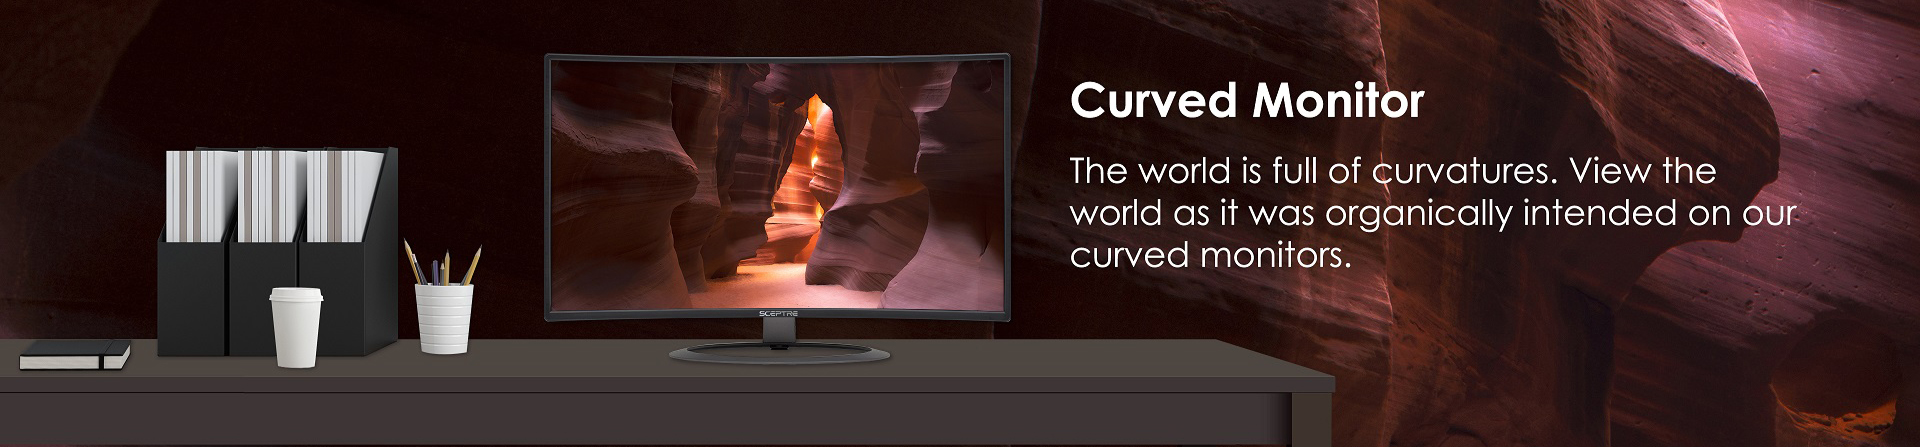 Curve Monitor